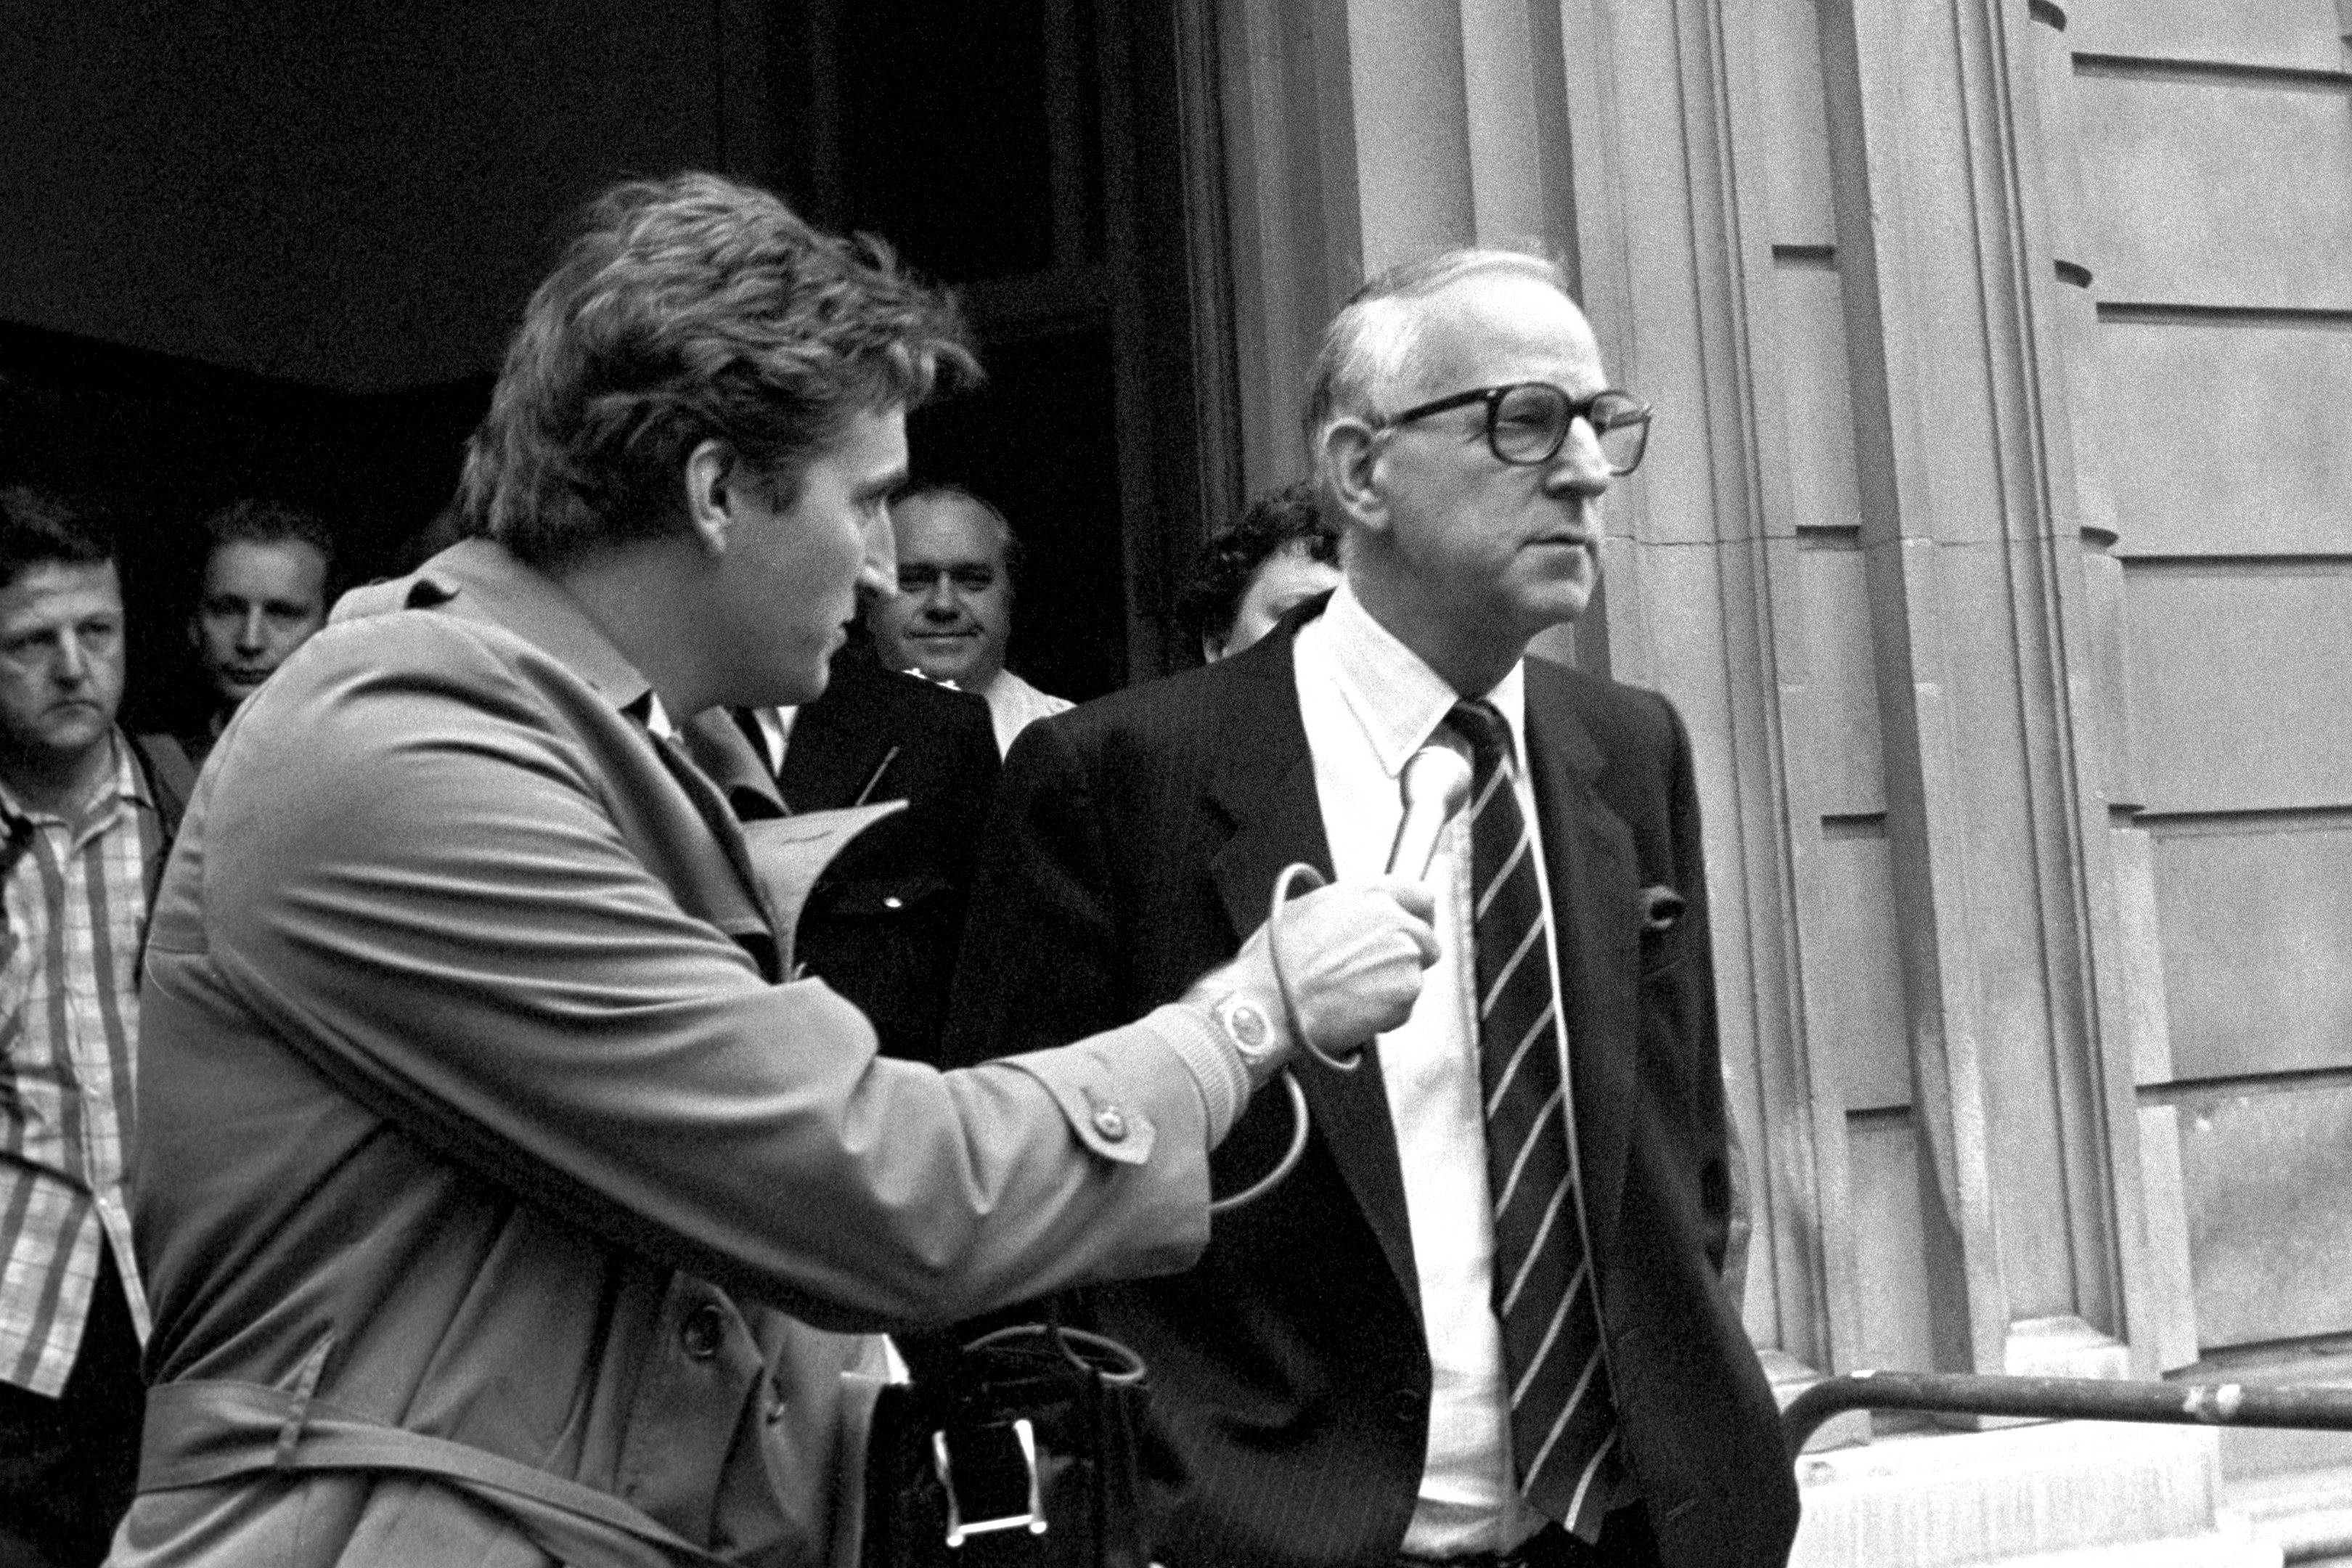 The former Guinness chairman, Ernest Saunders talks to reporters after an appearance at Bow Street Magistrates Court in 1987.